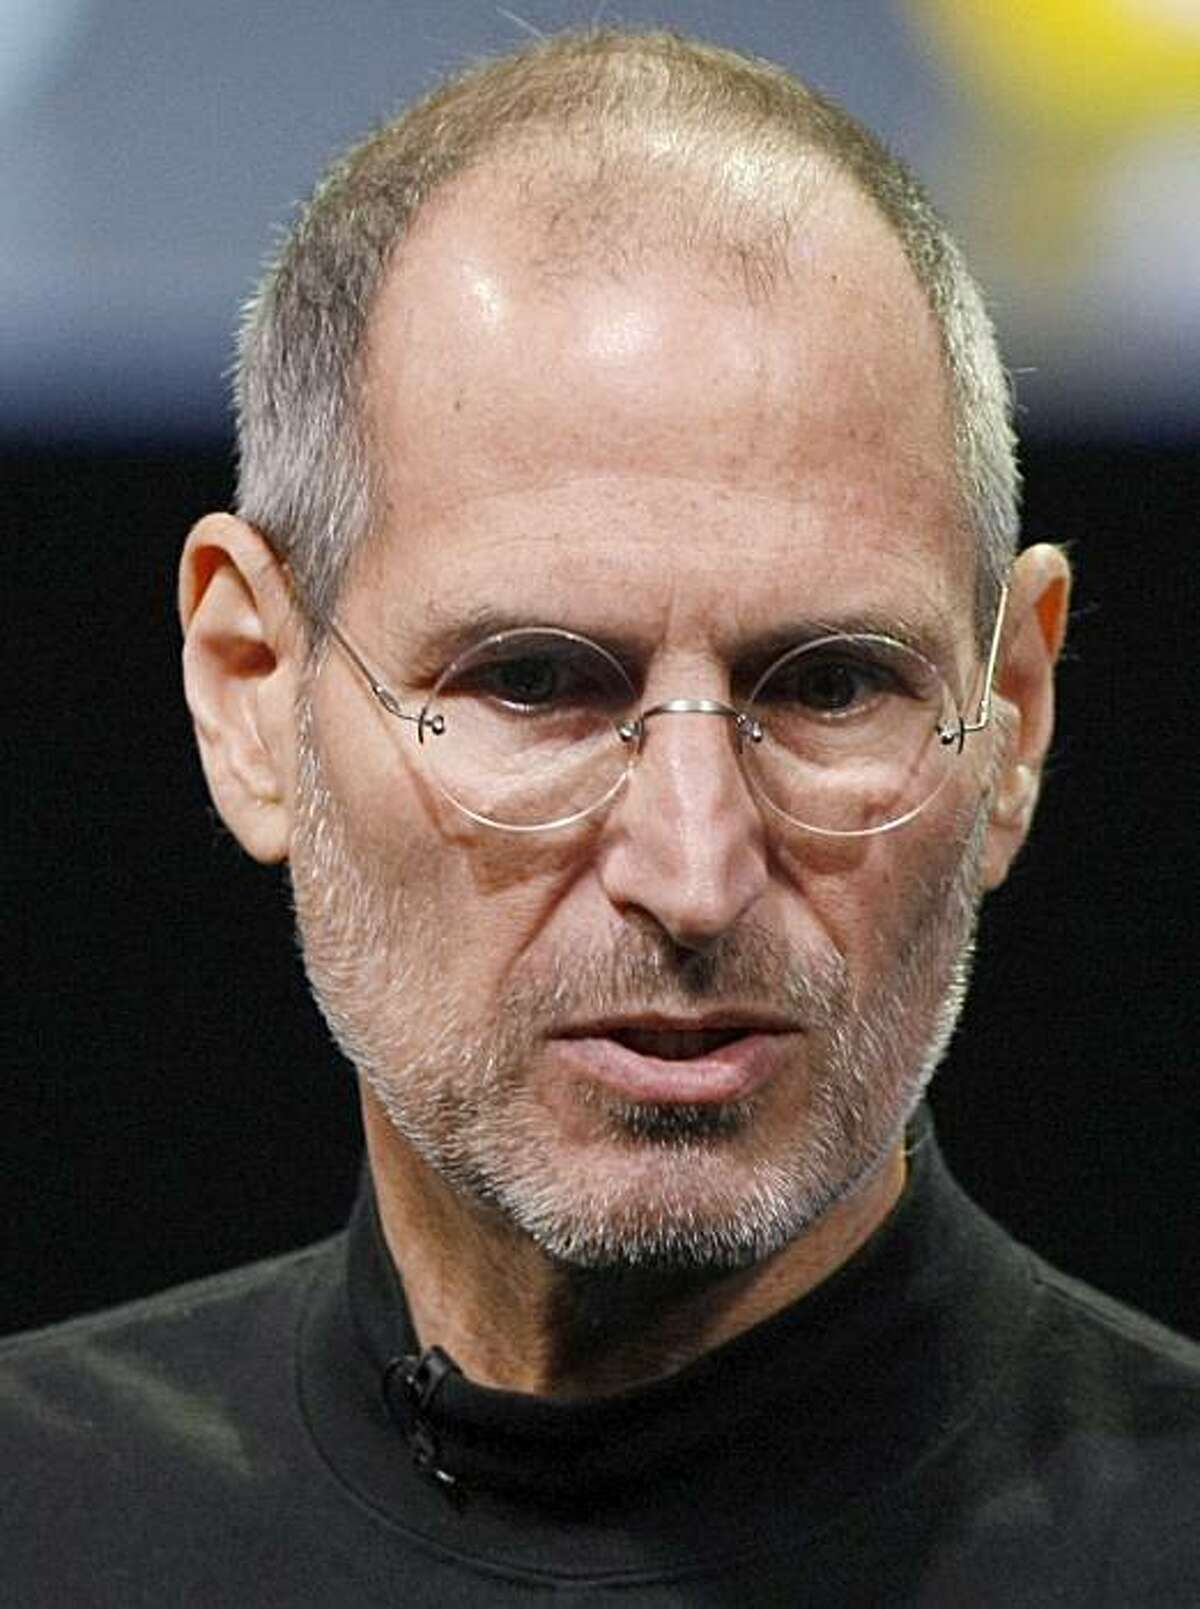 In this photo taken Jan. 27, 2010, Apple CEO Steve Jobs introduces the iPad during an Apple event in San Francisco.